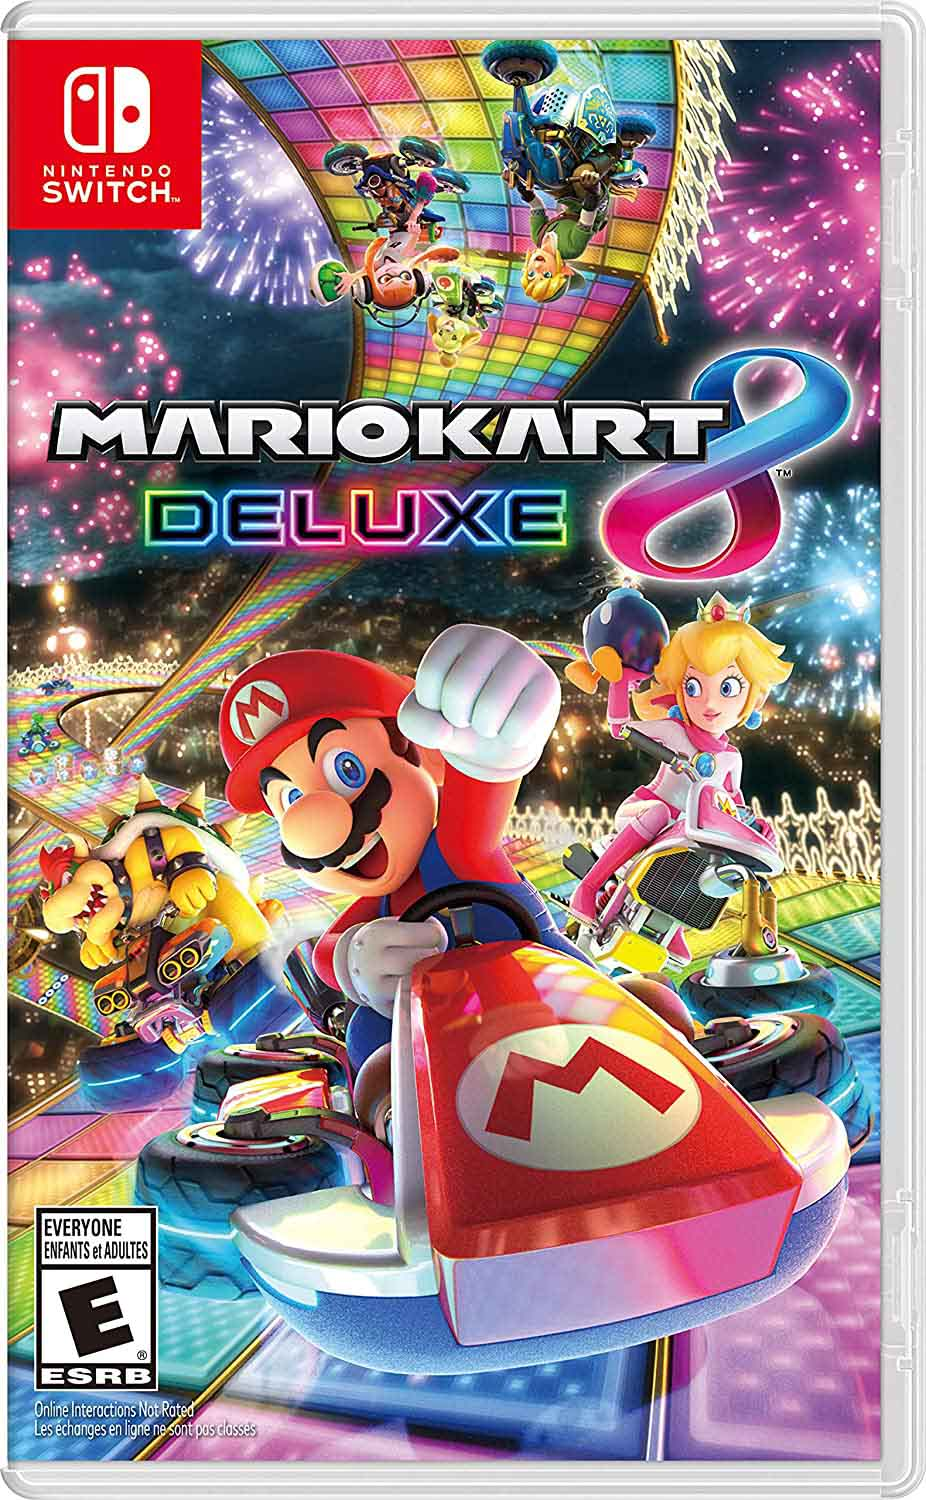 Super Mario Kart 8 Deluxe game cover